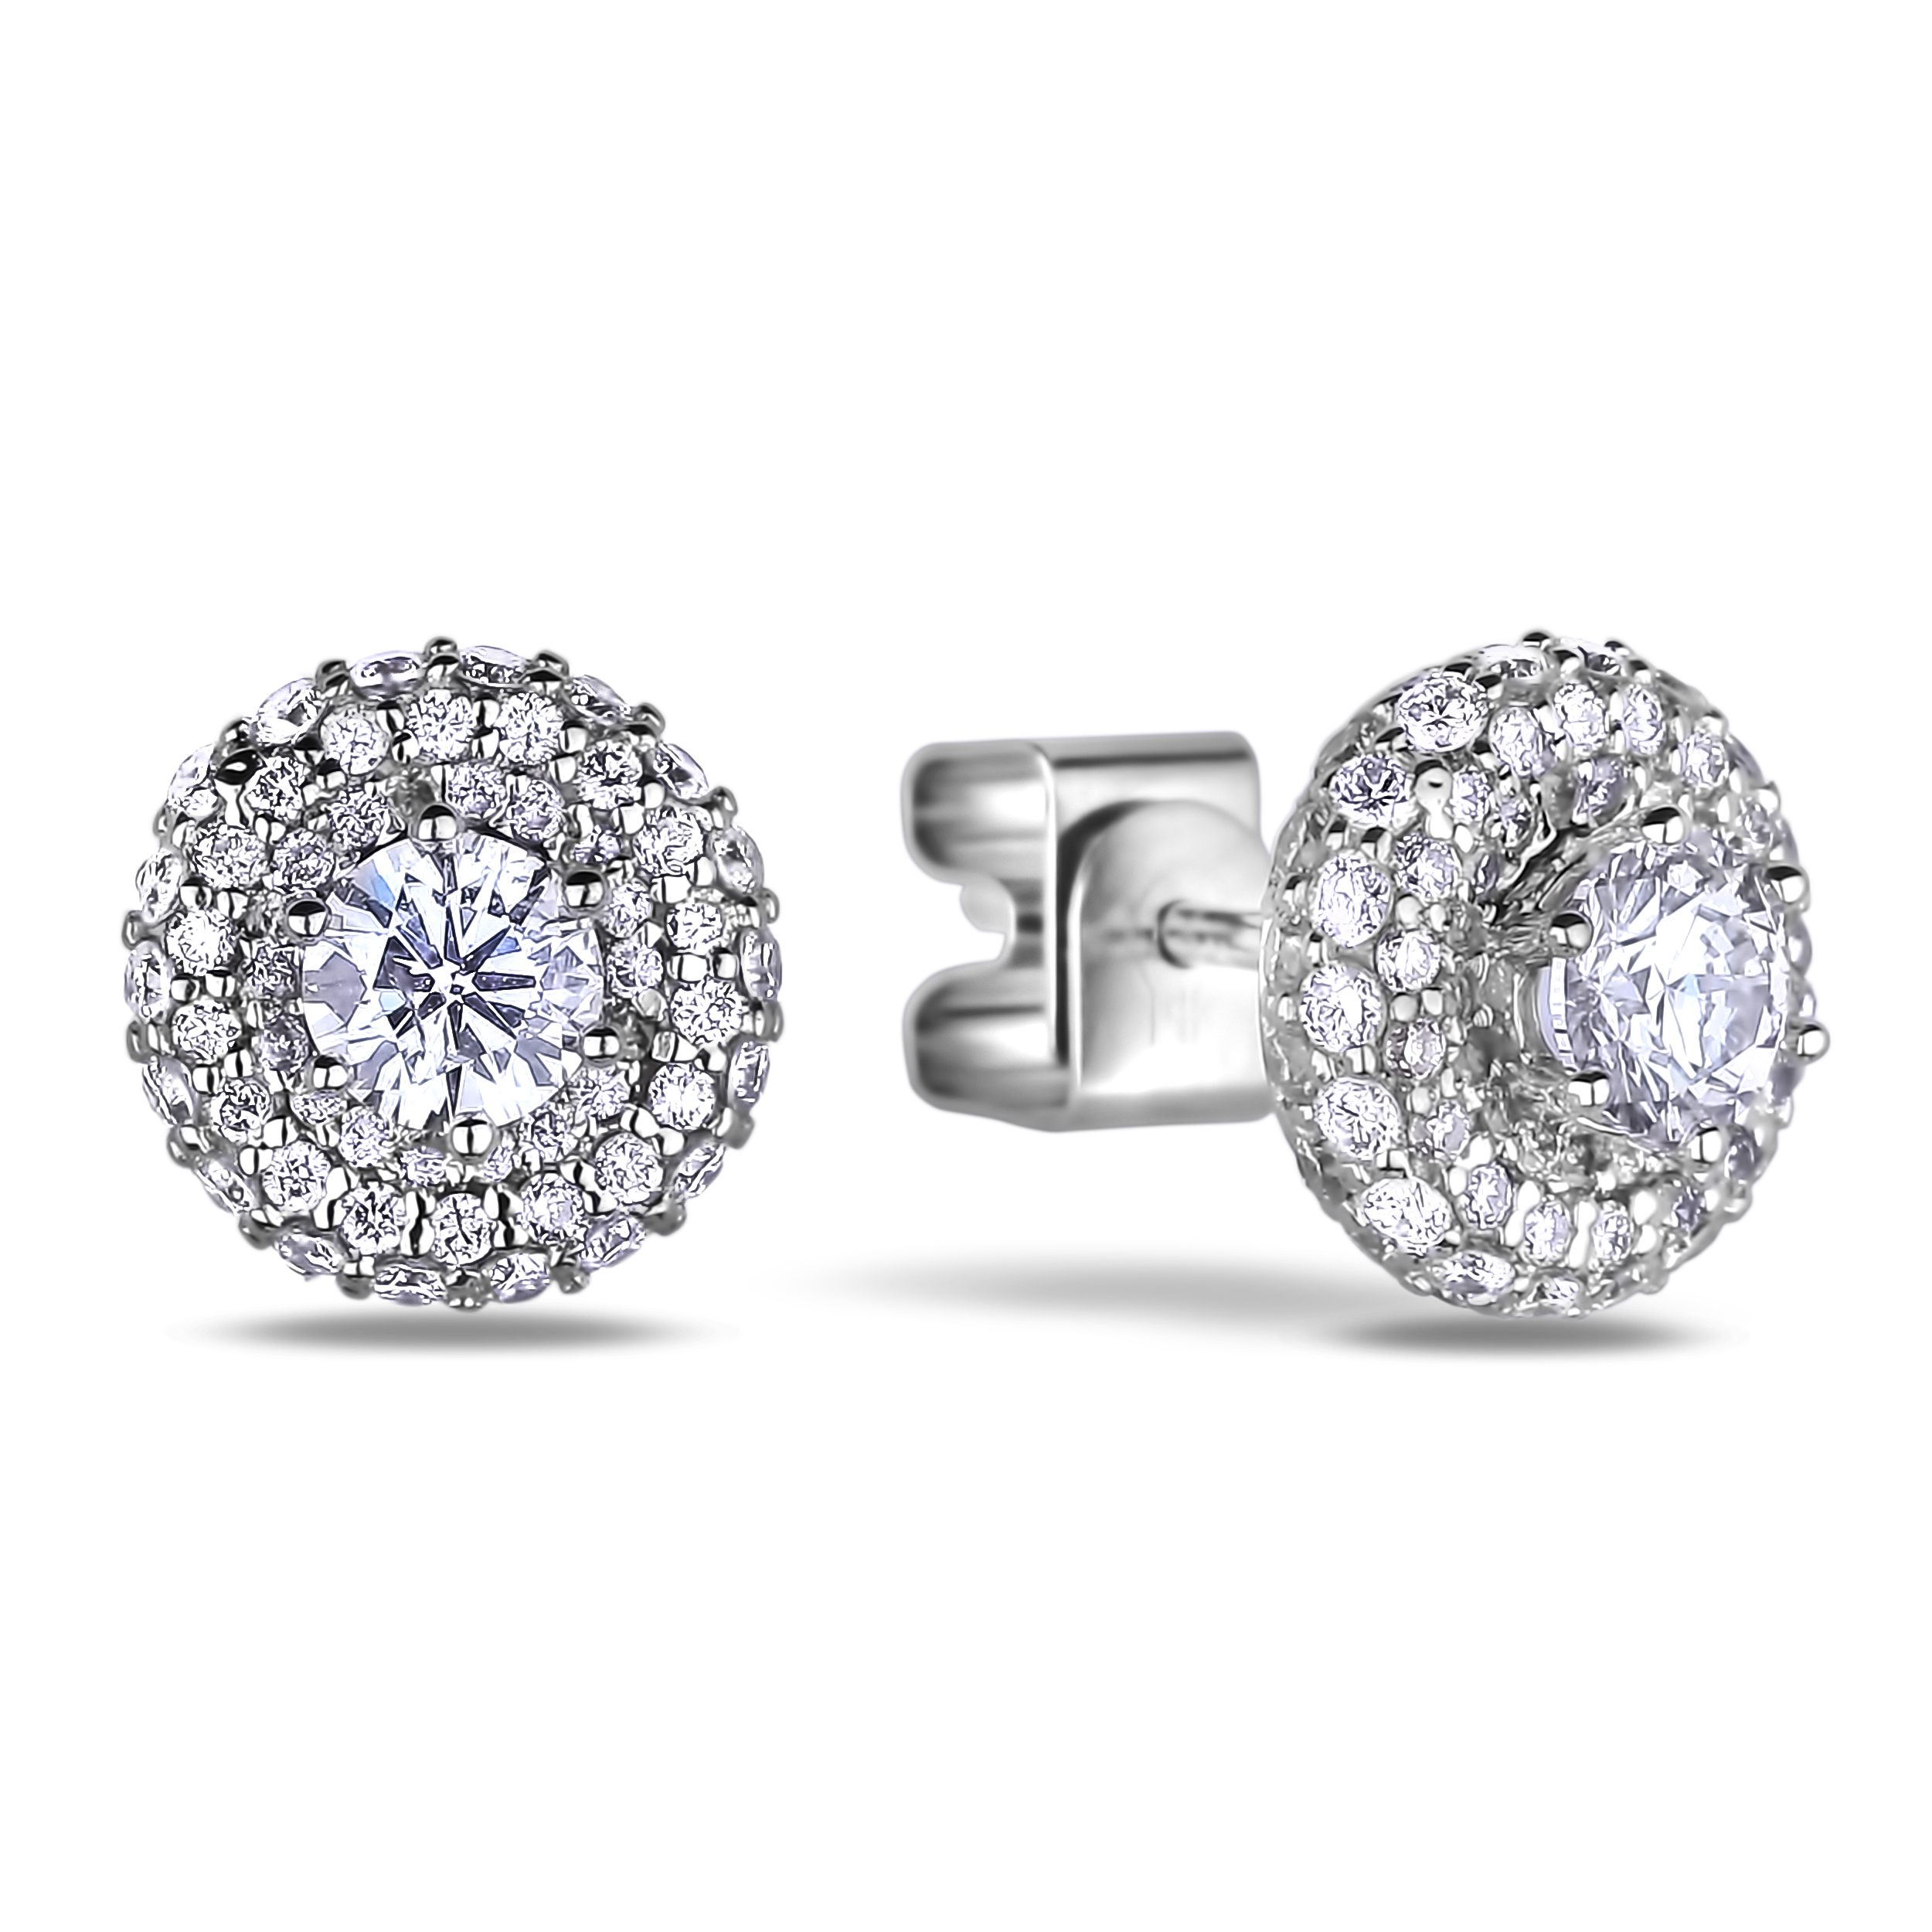 Diamond Stud Earrings SGE316 (Earrings)